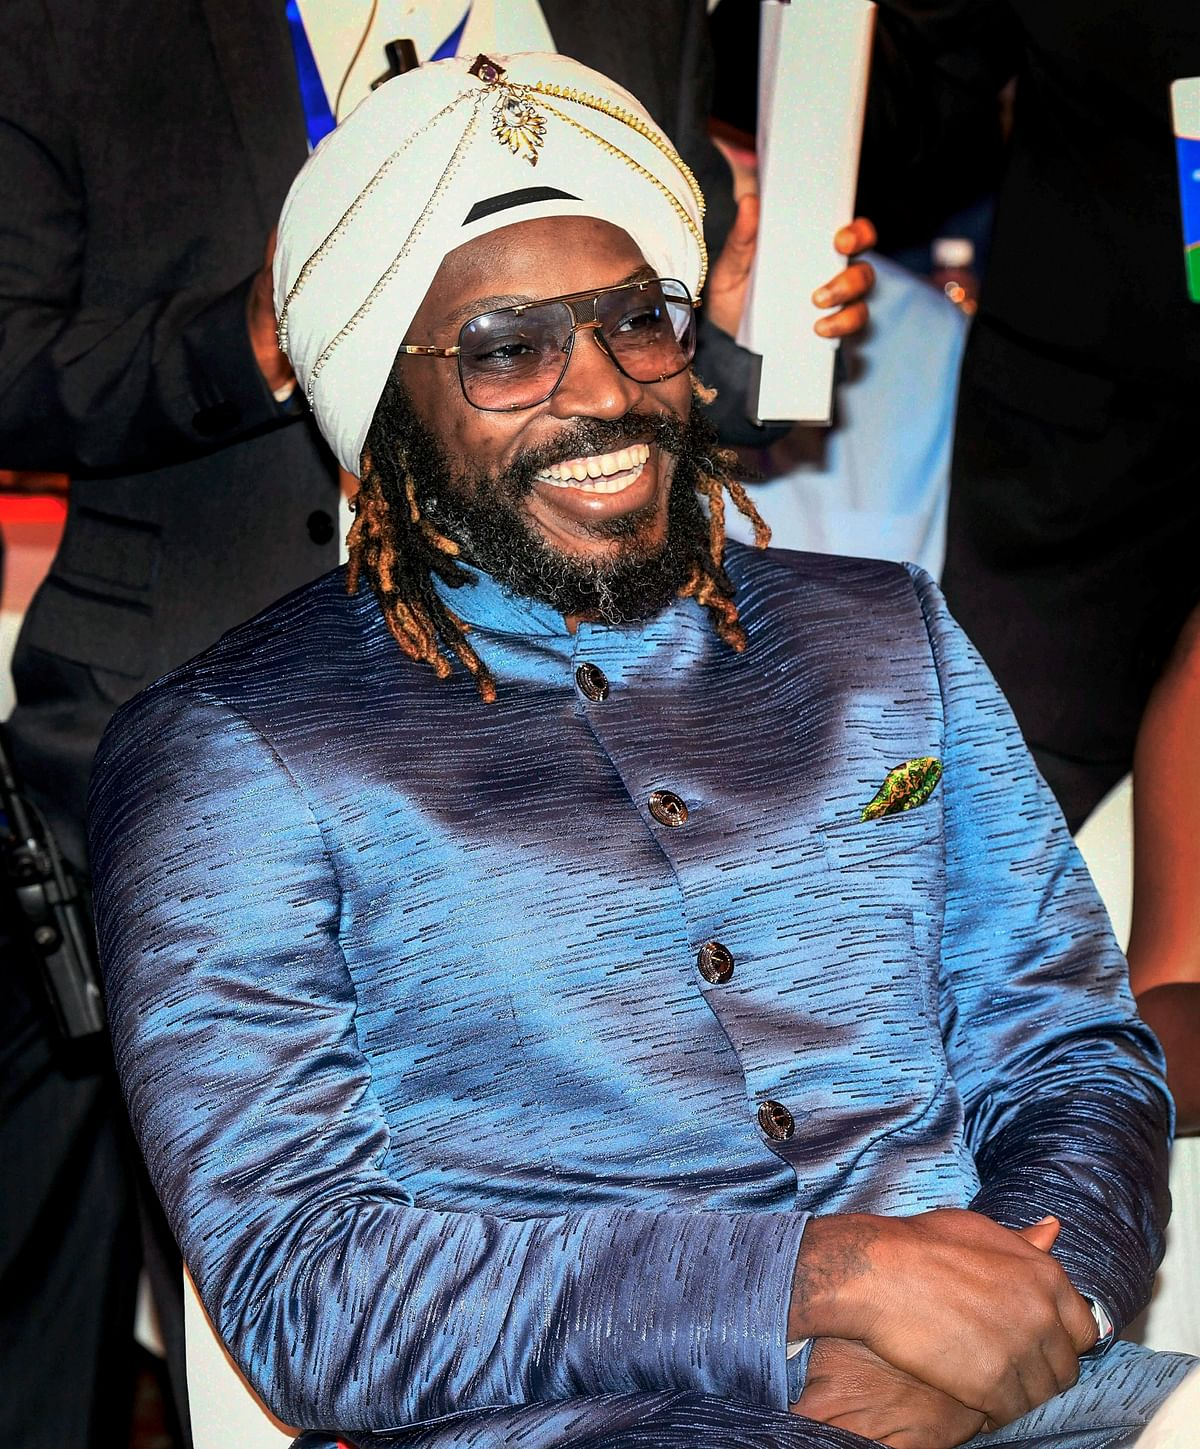 Chris Gayle  during the CEAT Awards.